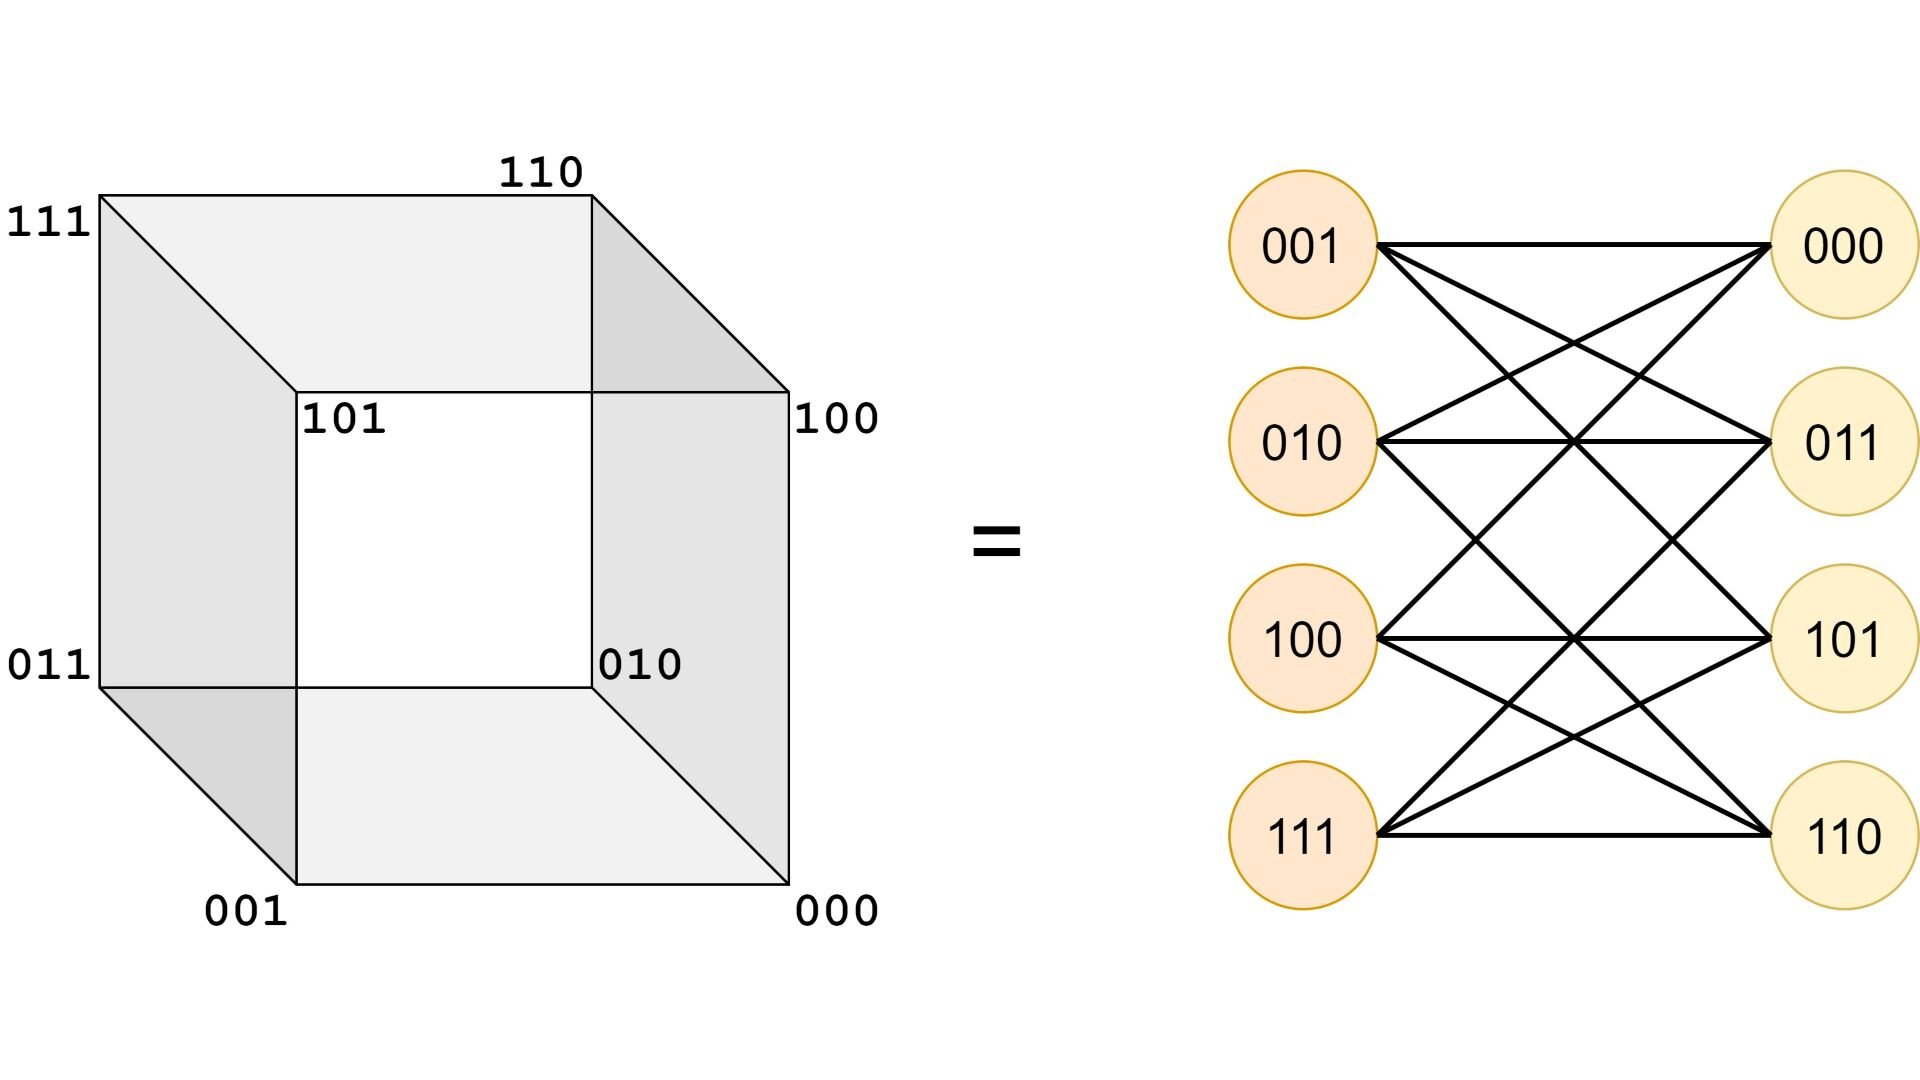 How propositional logic minimization and gray codes are connected